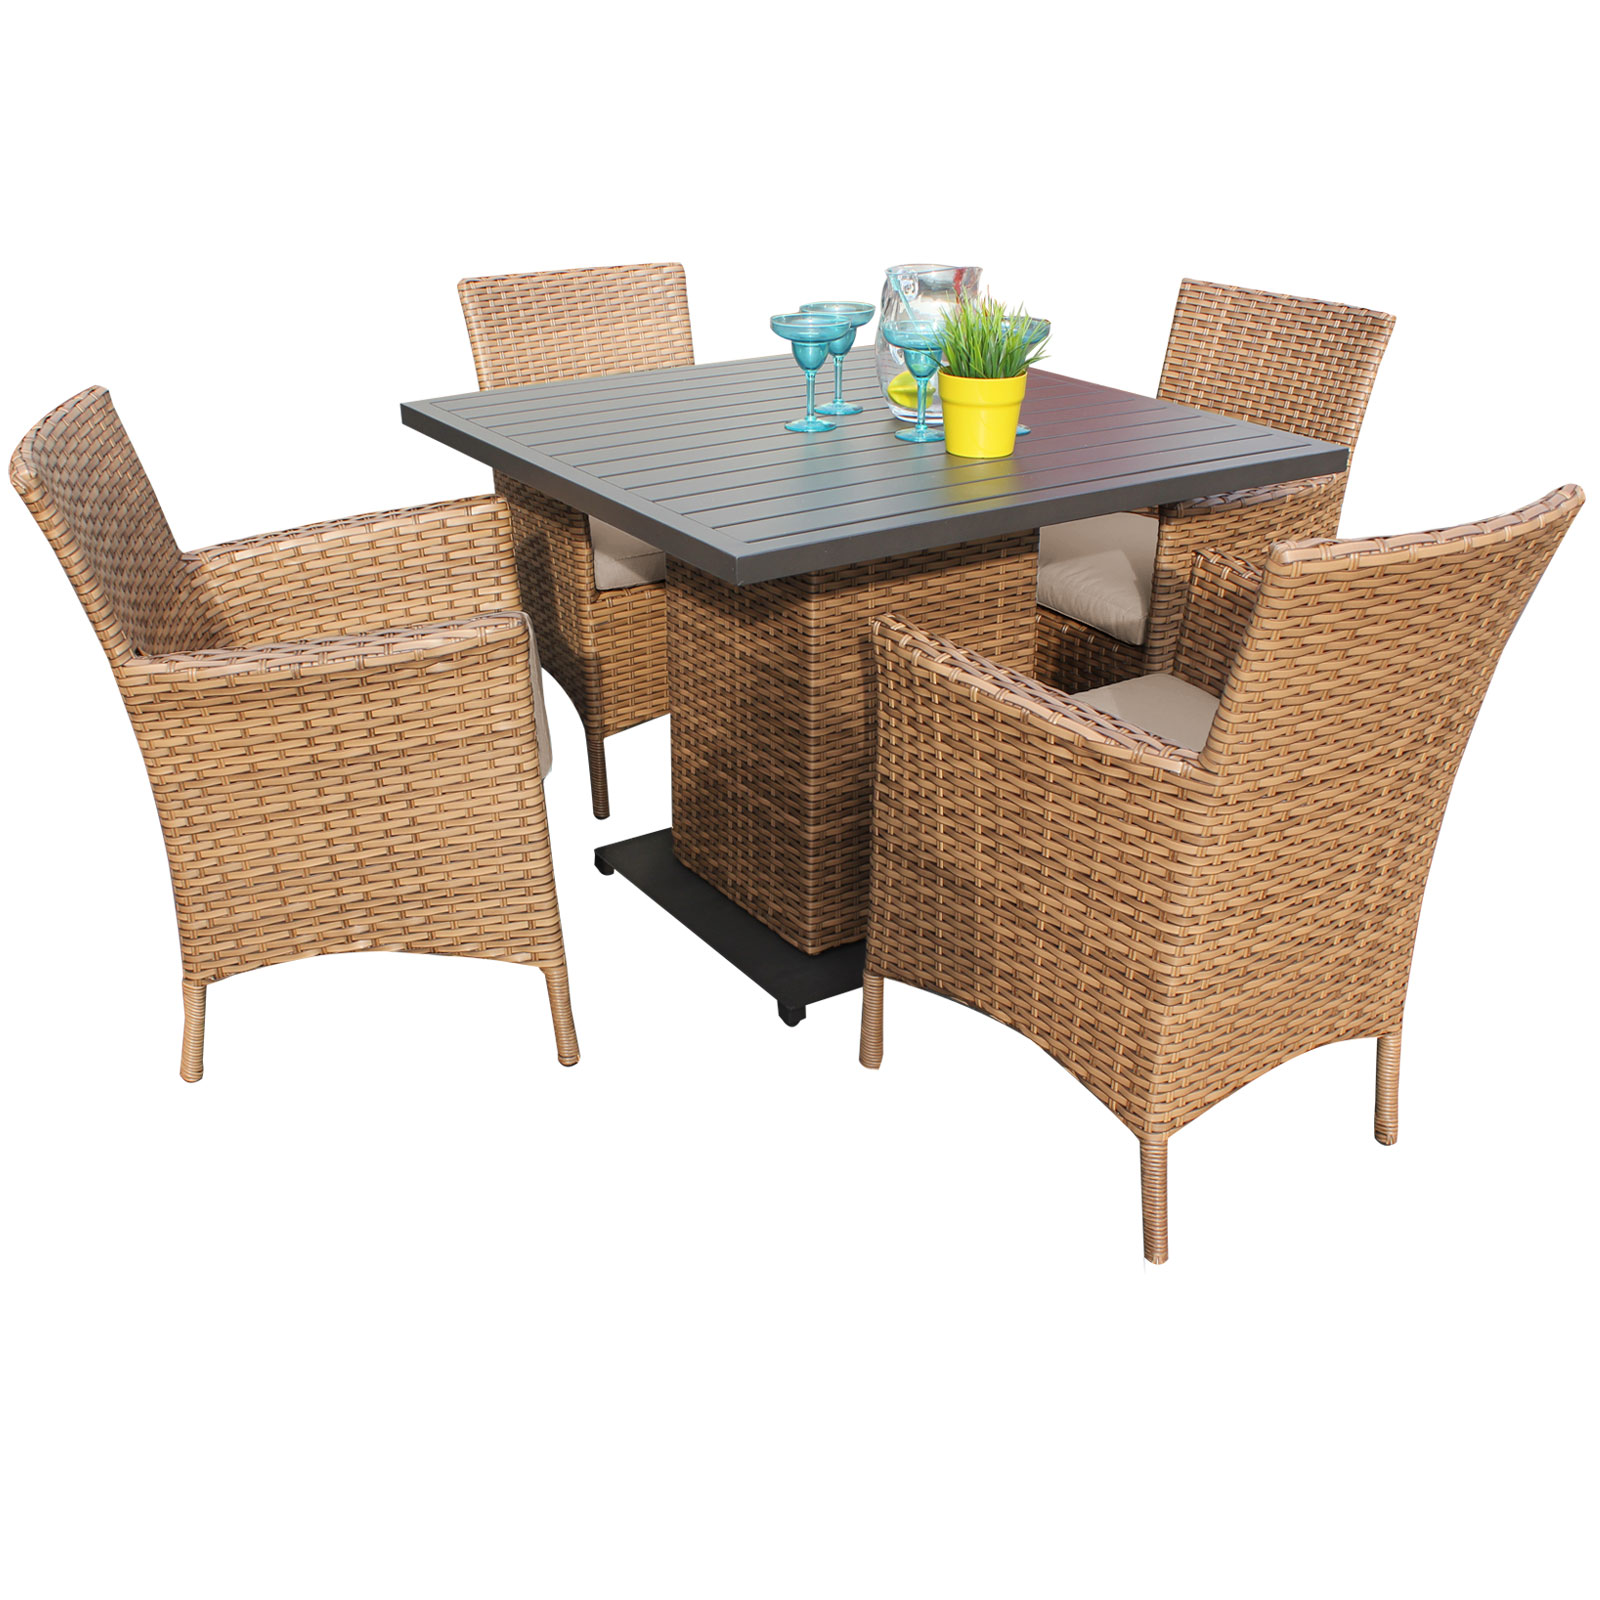 Tuscan Square Dining Table with 4 Chairs